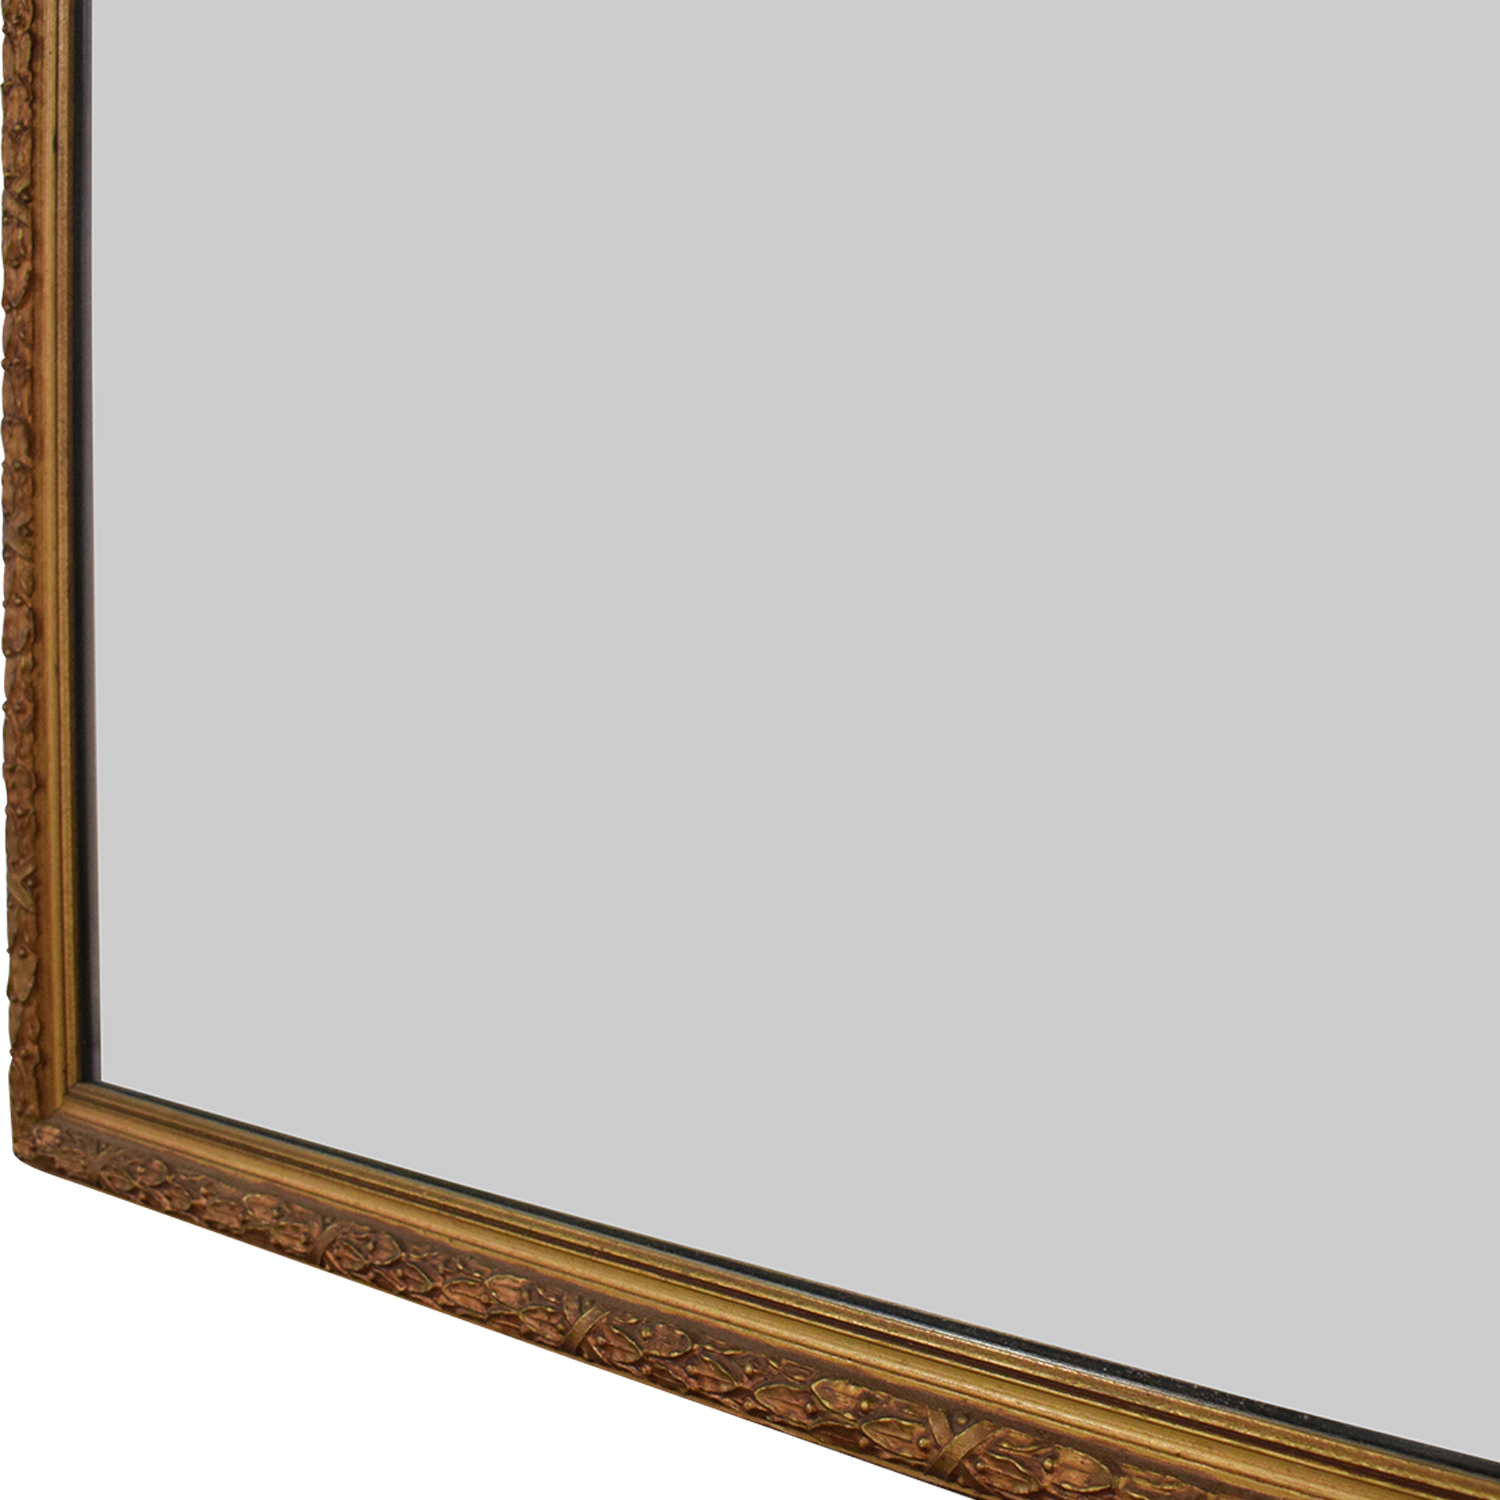 White Seid Products Vintage Framed Mirror Mirrors